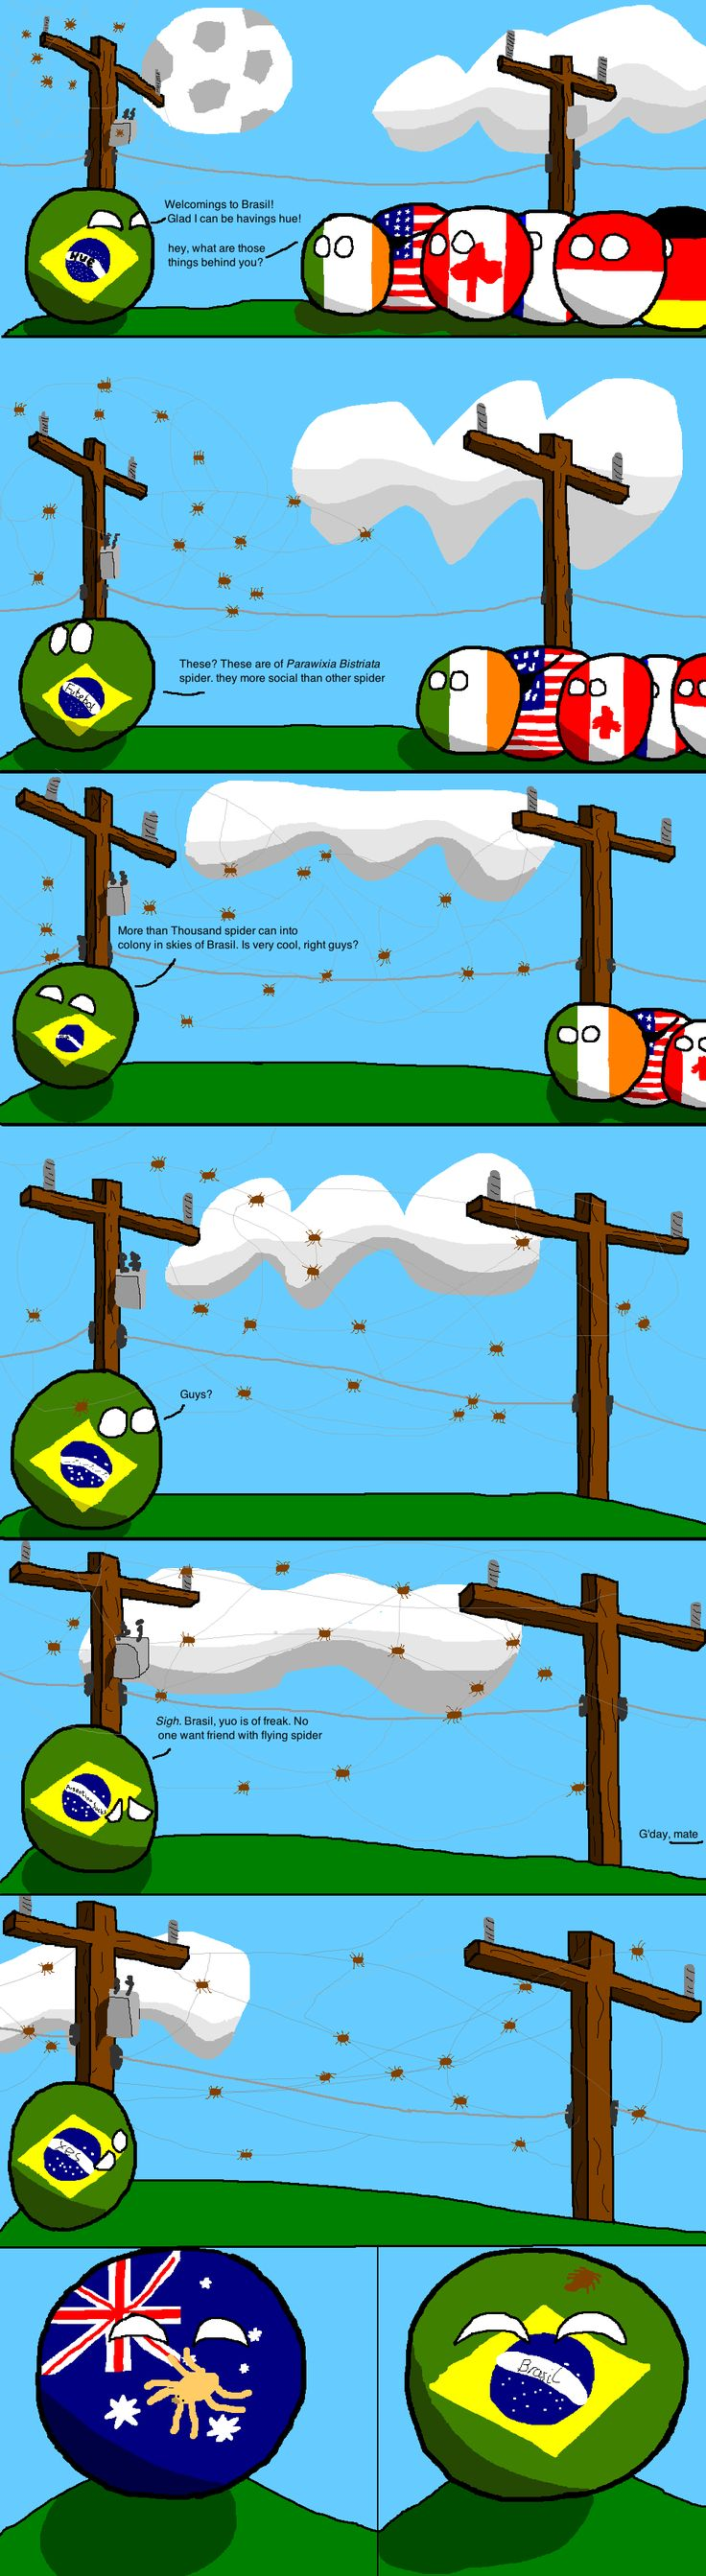 how I met all my friends Brazil makes a friend - Imgur found via the polandball facebook page